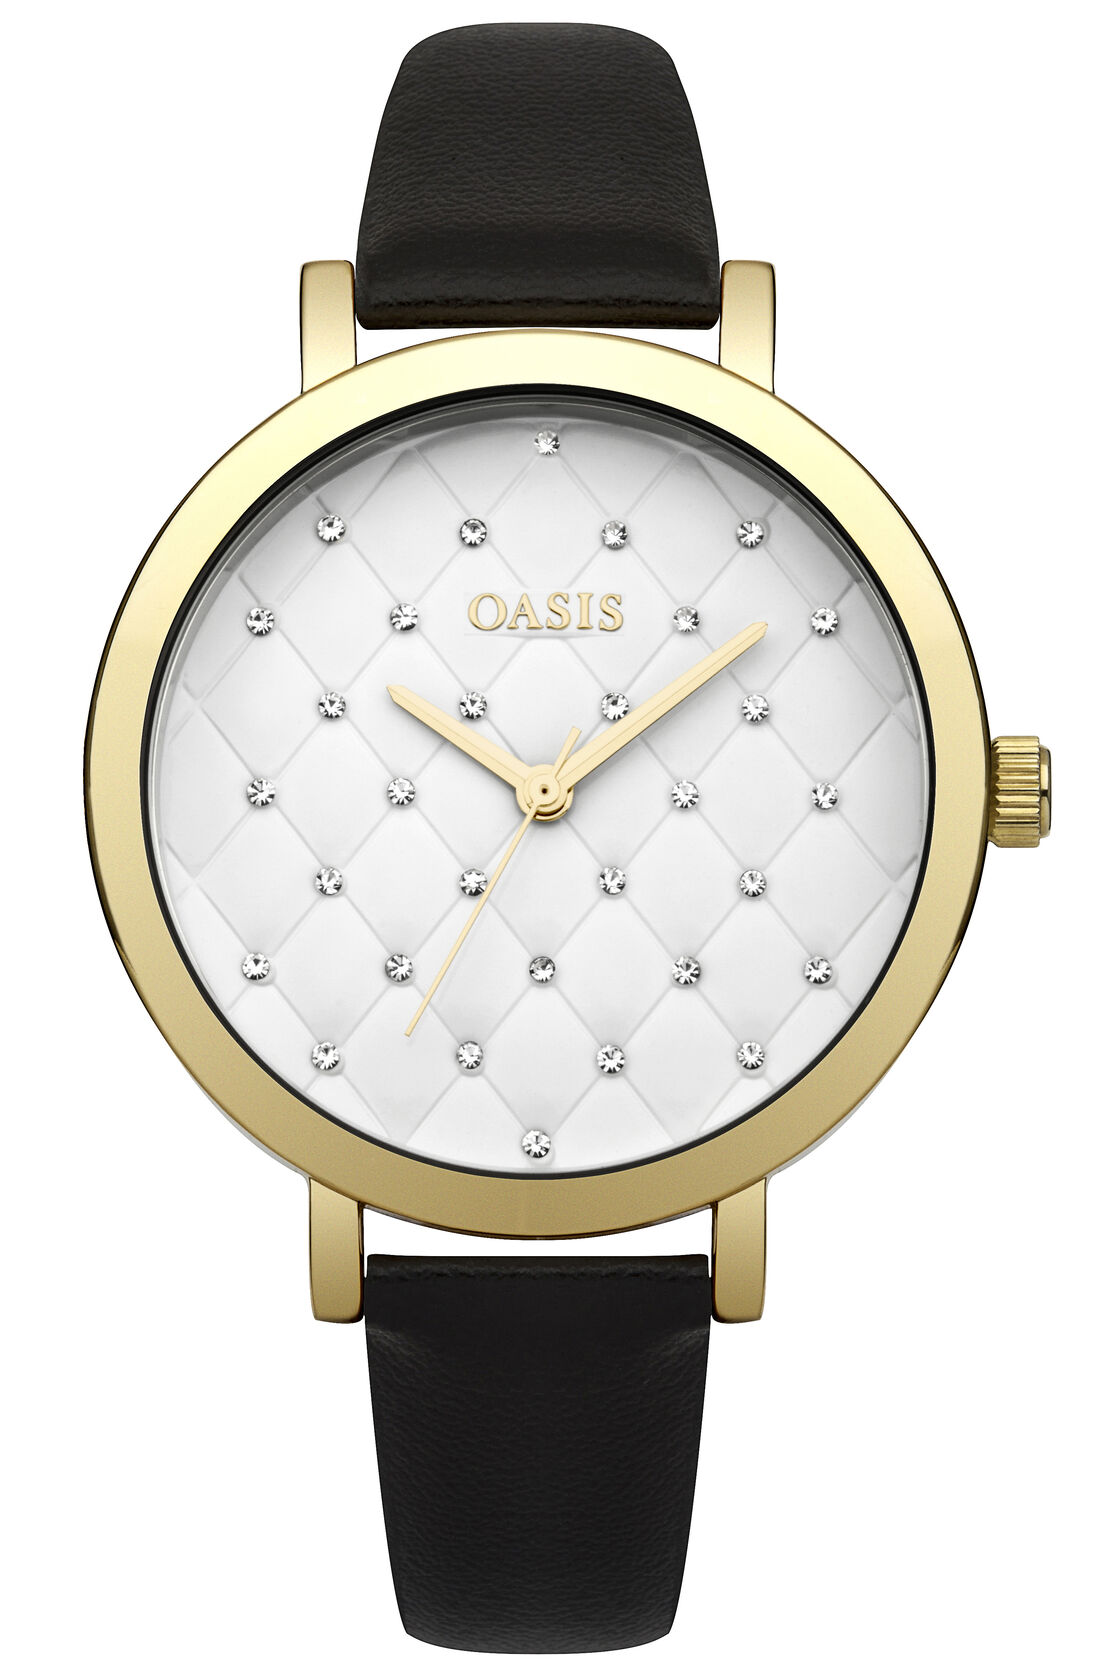 Oasis, Quilted Dial Watch Black 1